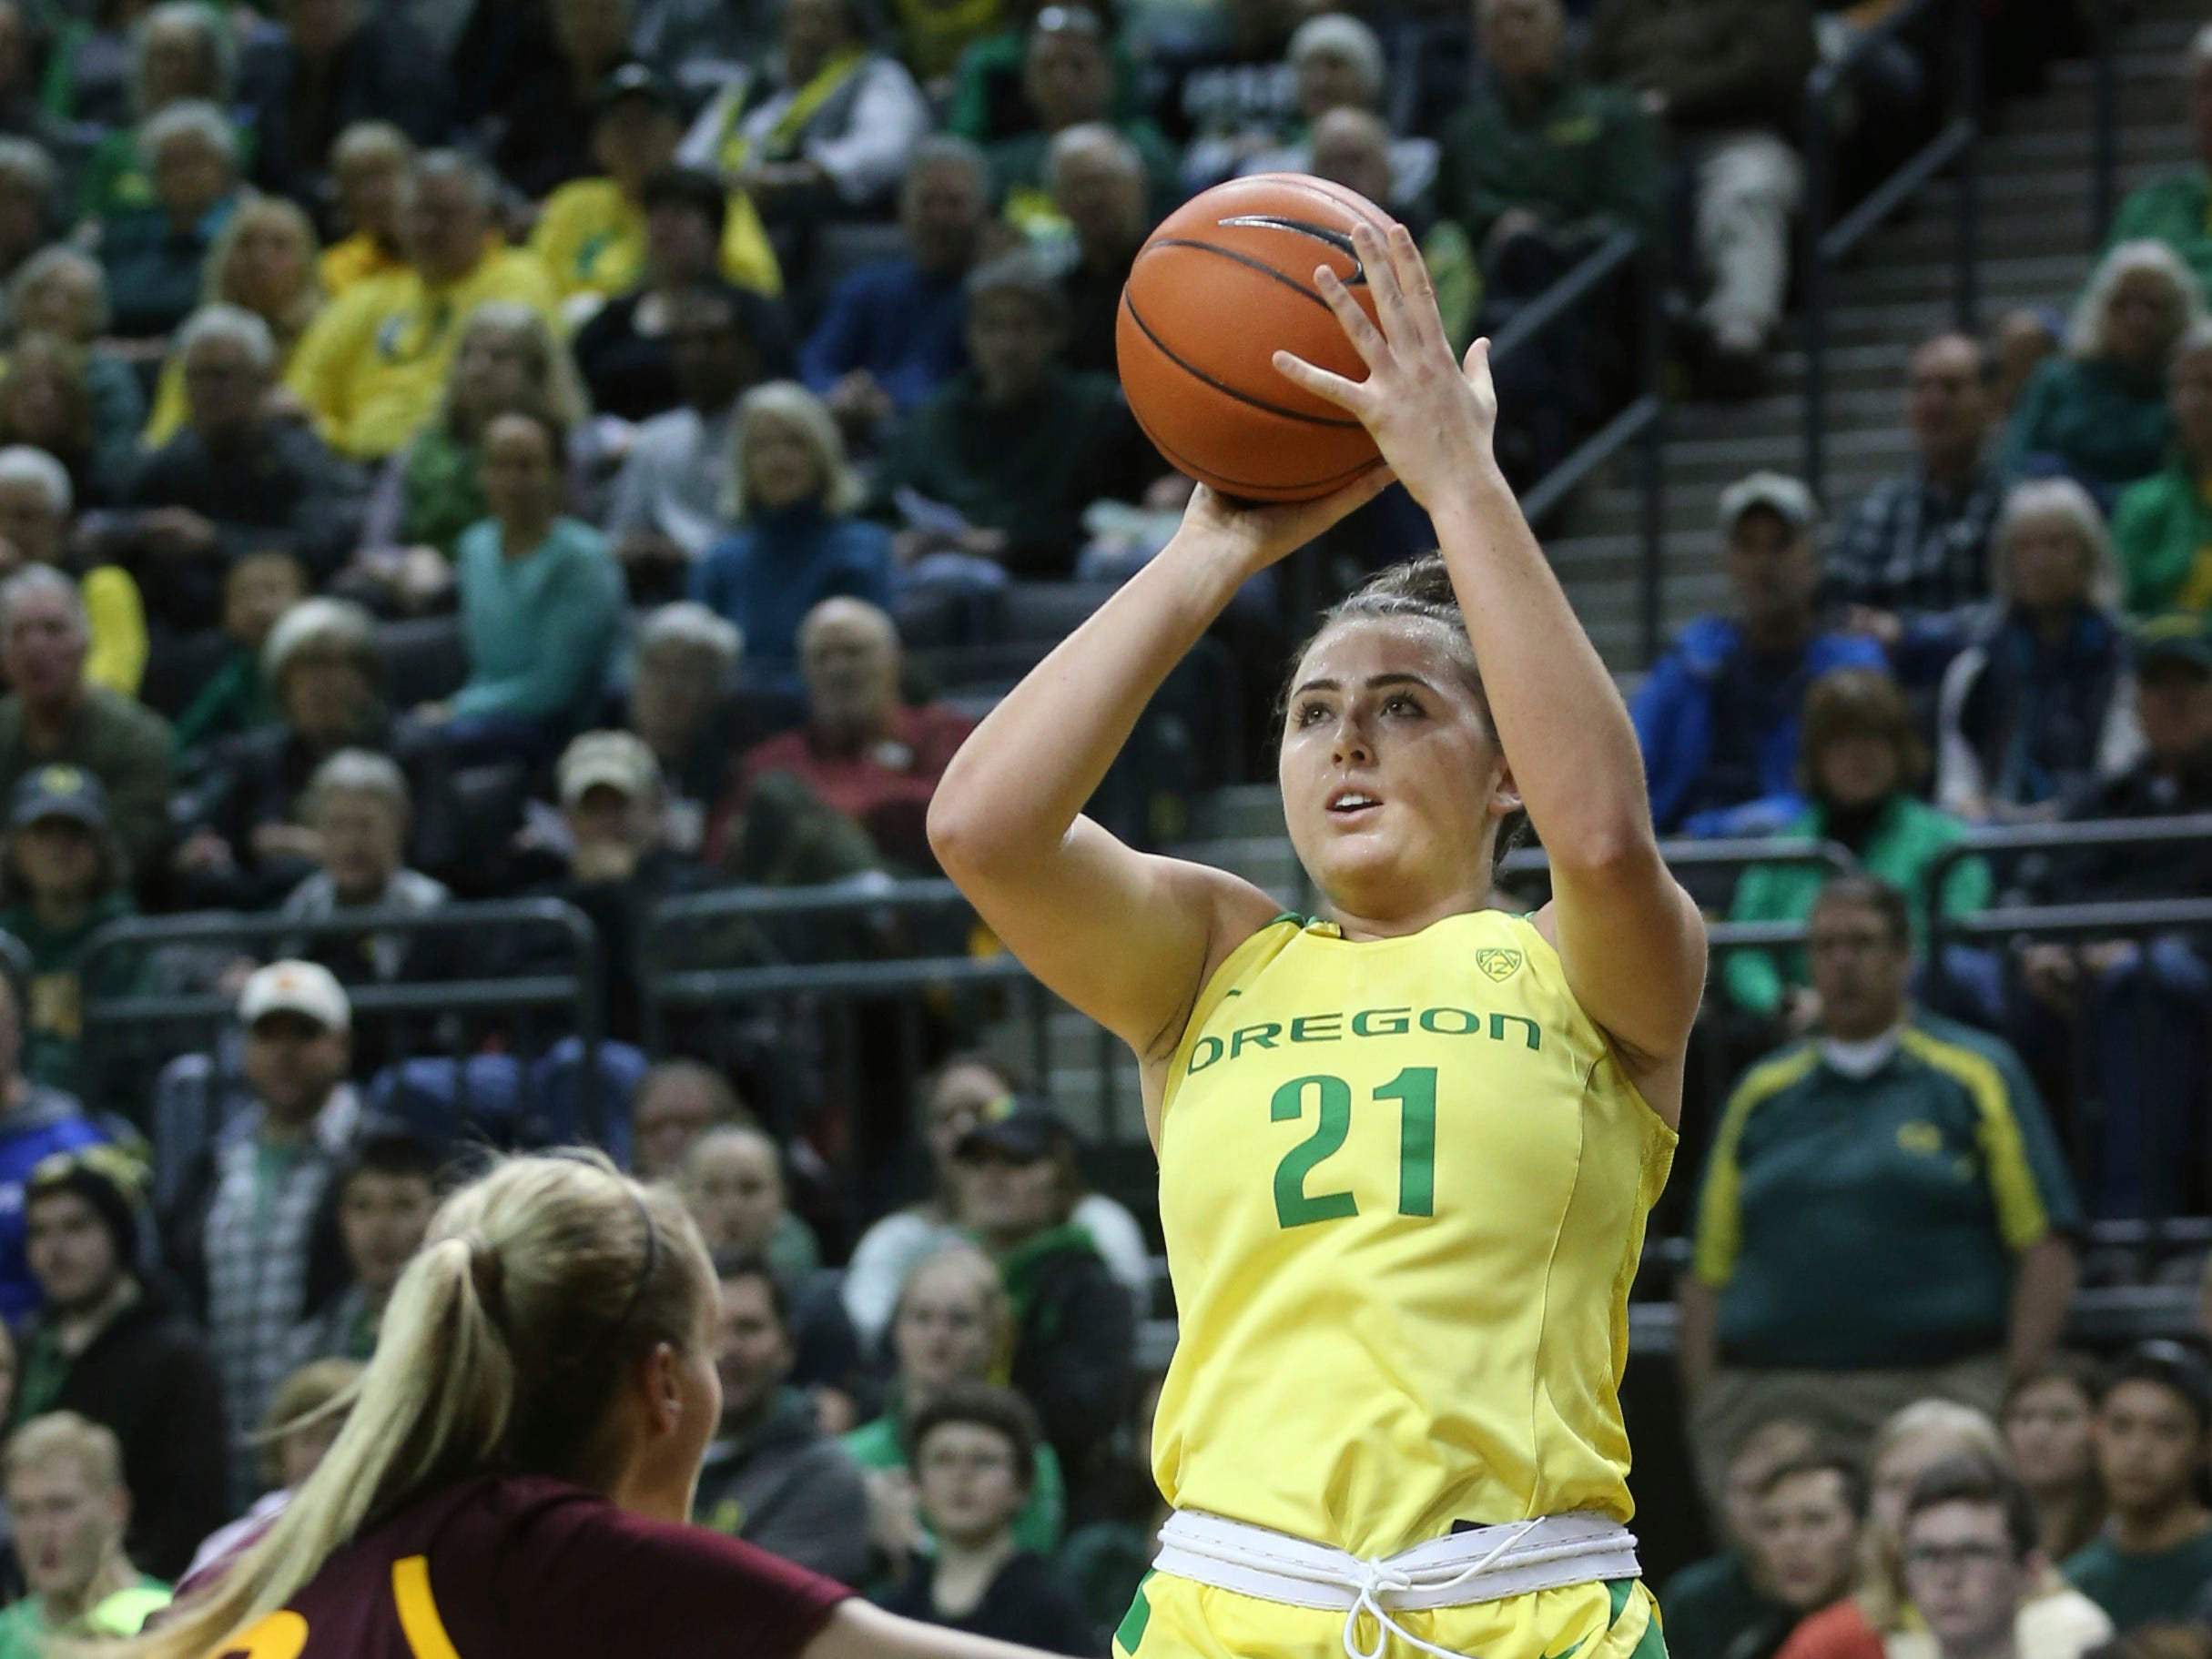 Oregon's Erin Boley, right, shots over Arizona State's Courtney Ekmark during the second quarter of an NCAA college basketball game Friday, Jan 18, 2019, in Eugene, Ore. (AP Photo/Chris Pietsch)